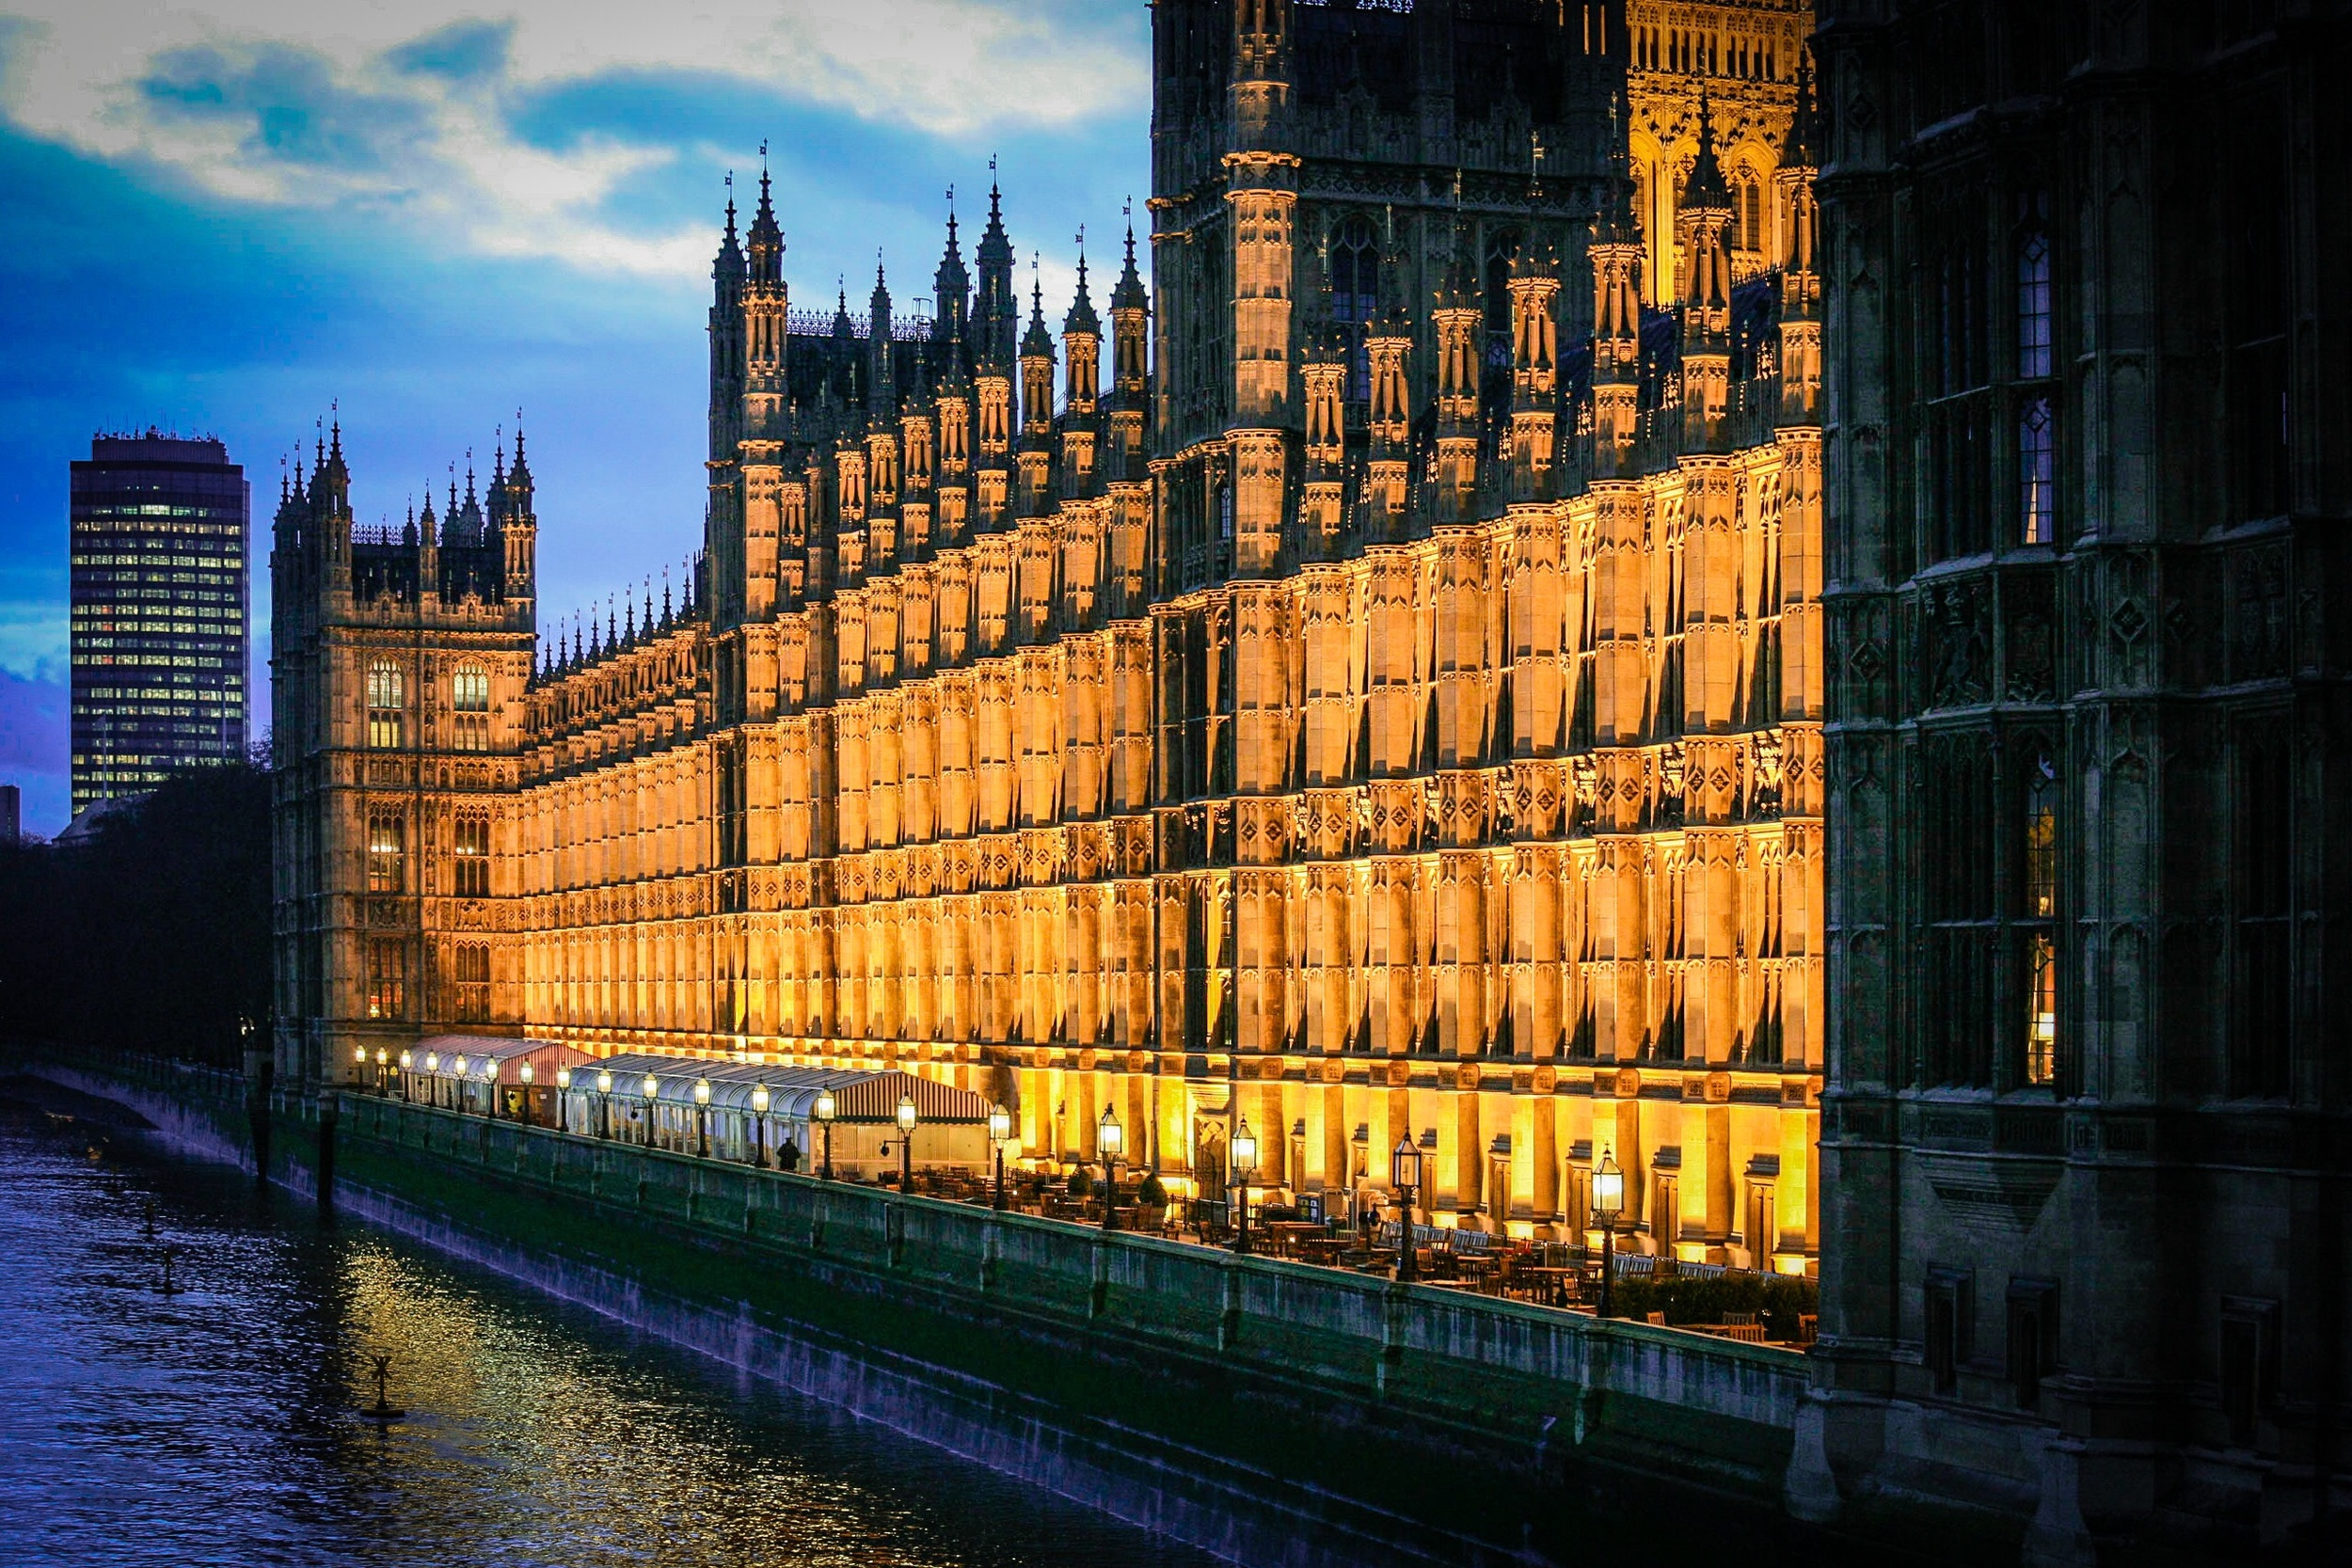 Houses of Parliament, The Palace of Westminster, London